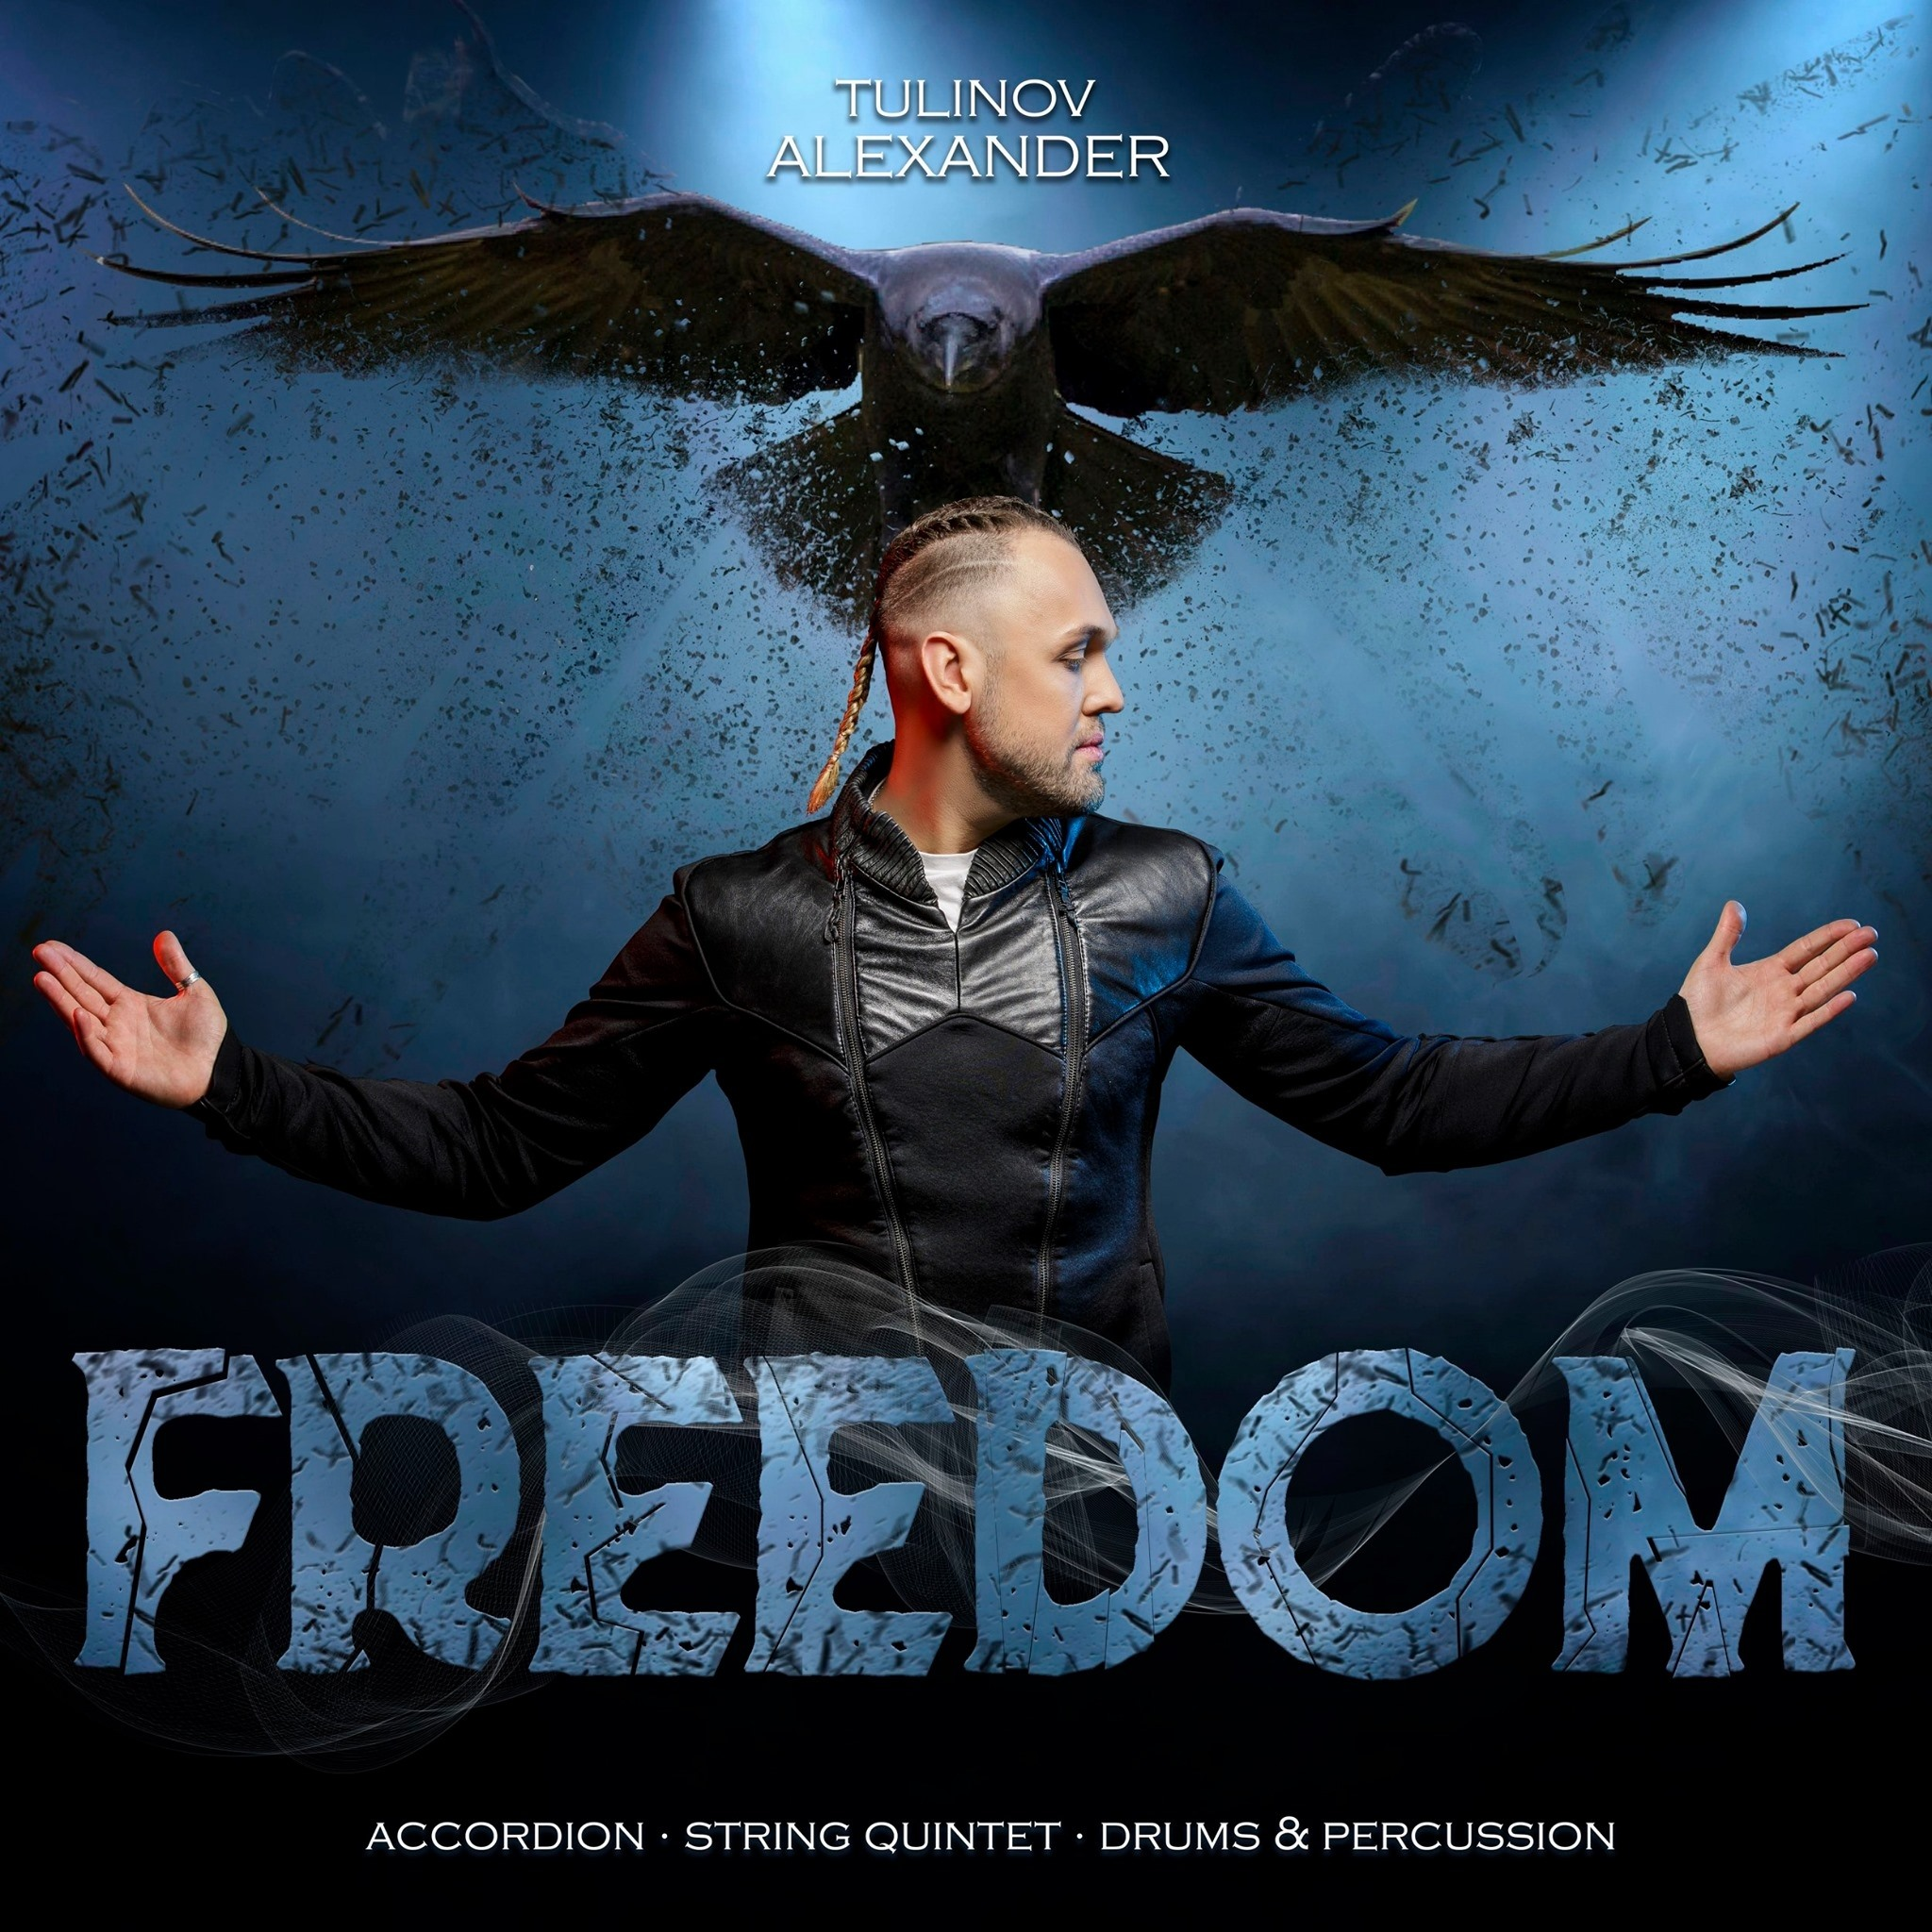 1-Cover-freedomxV8RJMDFfuECc